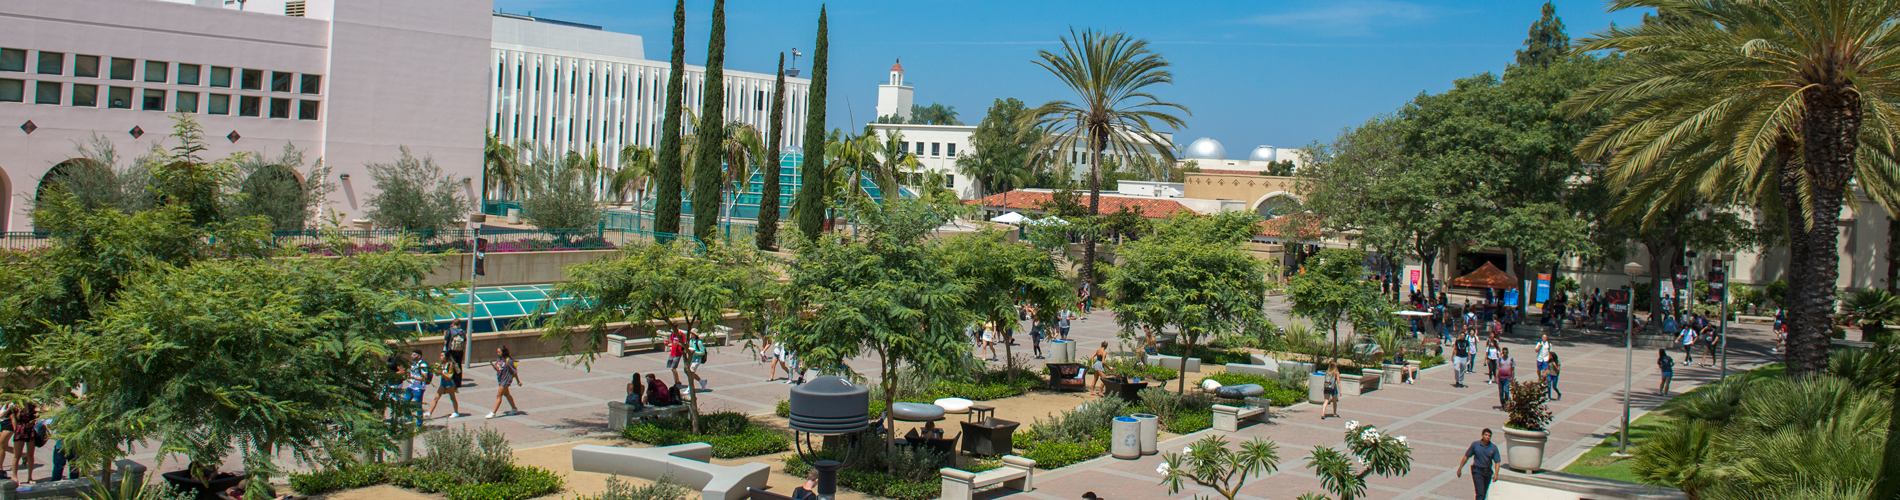 Beautiful SDSU campus